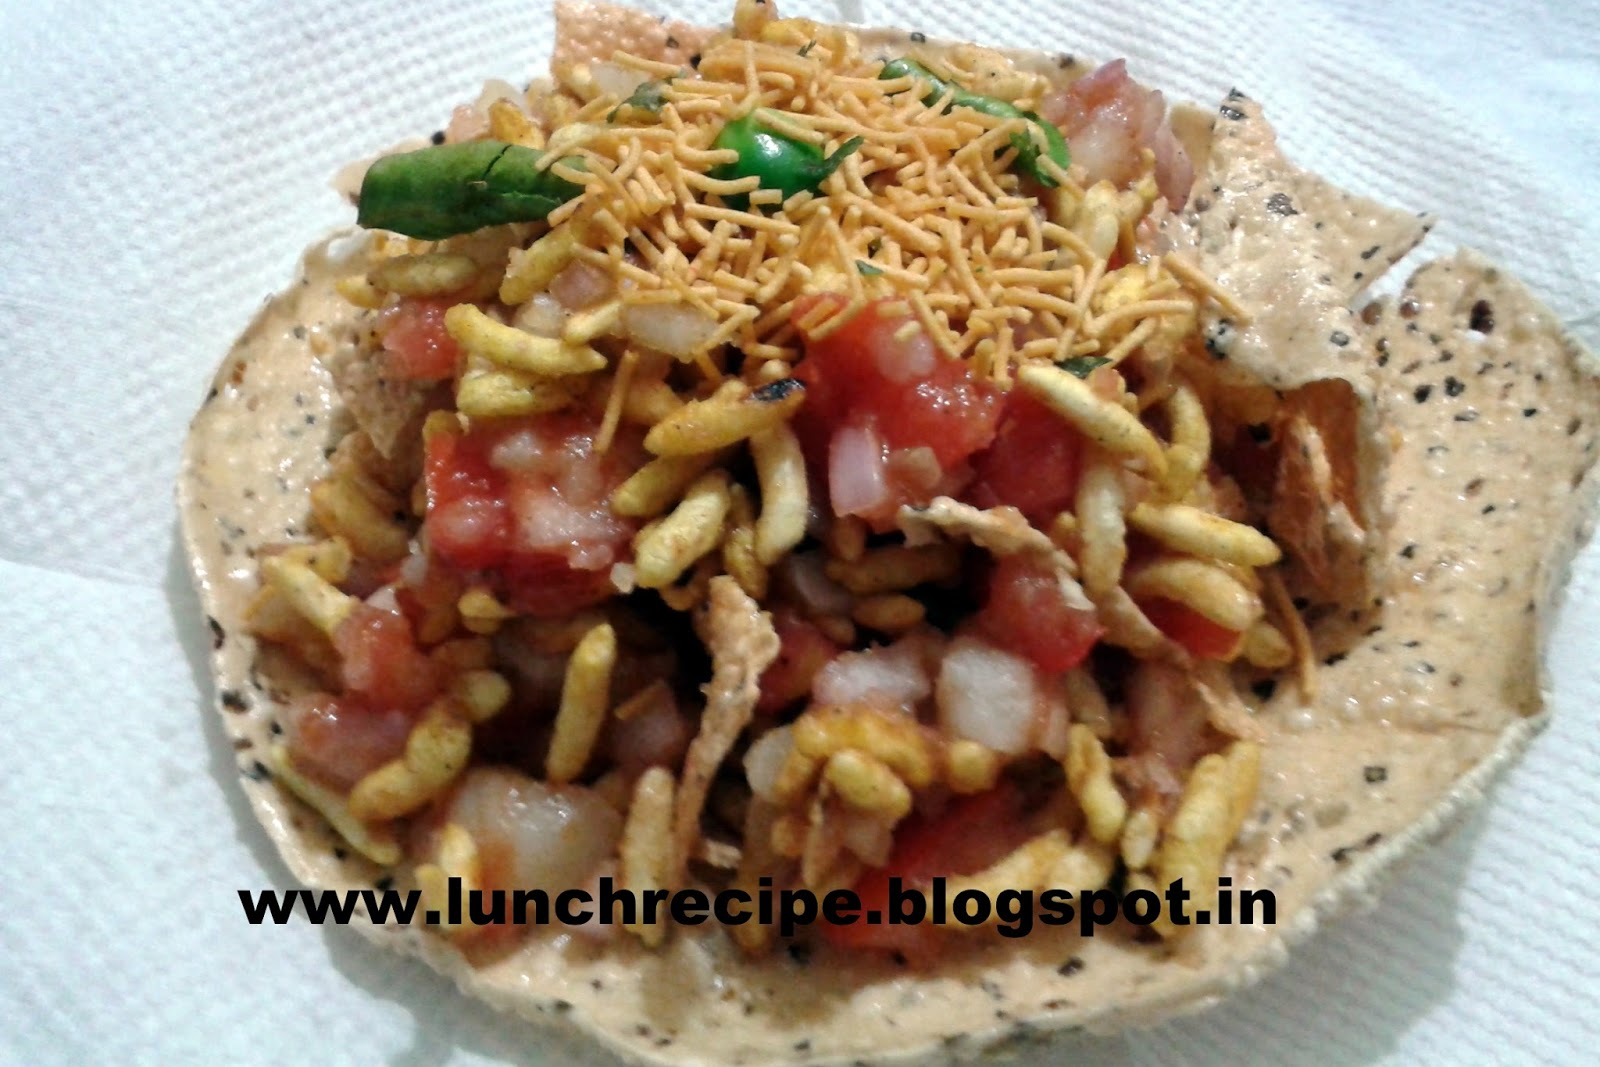 How to make Papad Bhel Revipe | पापड़ भेल - Papad Bhel